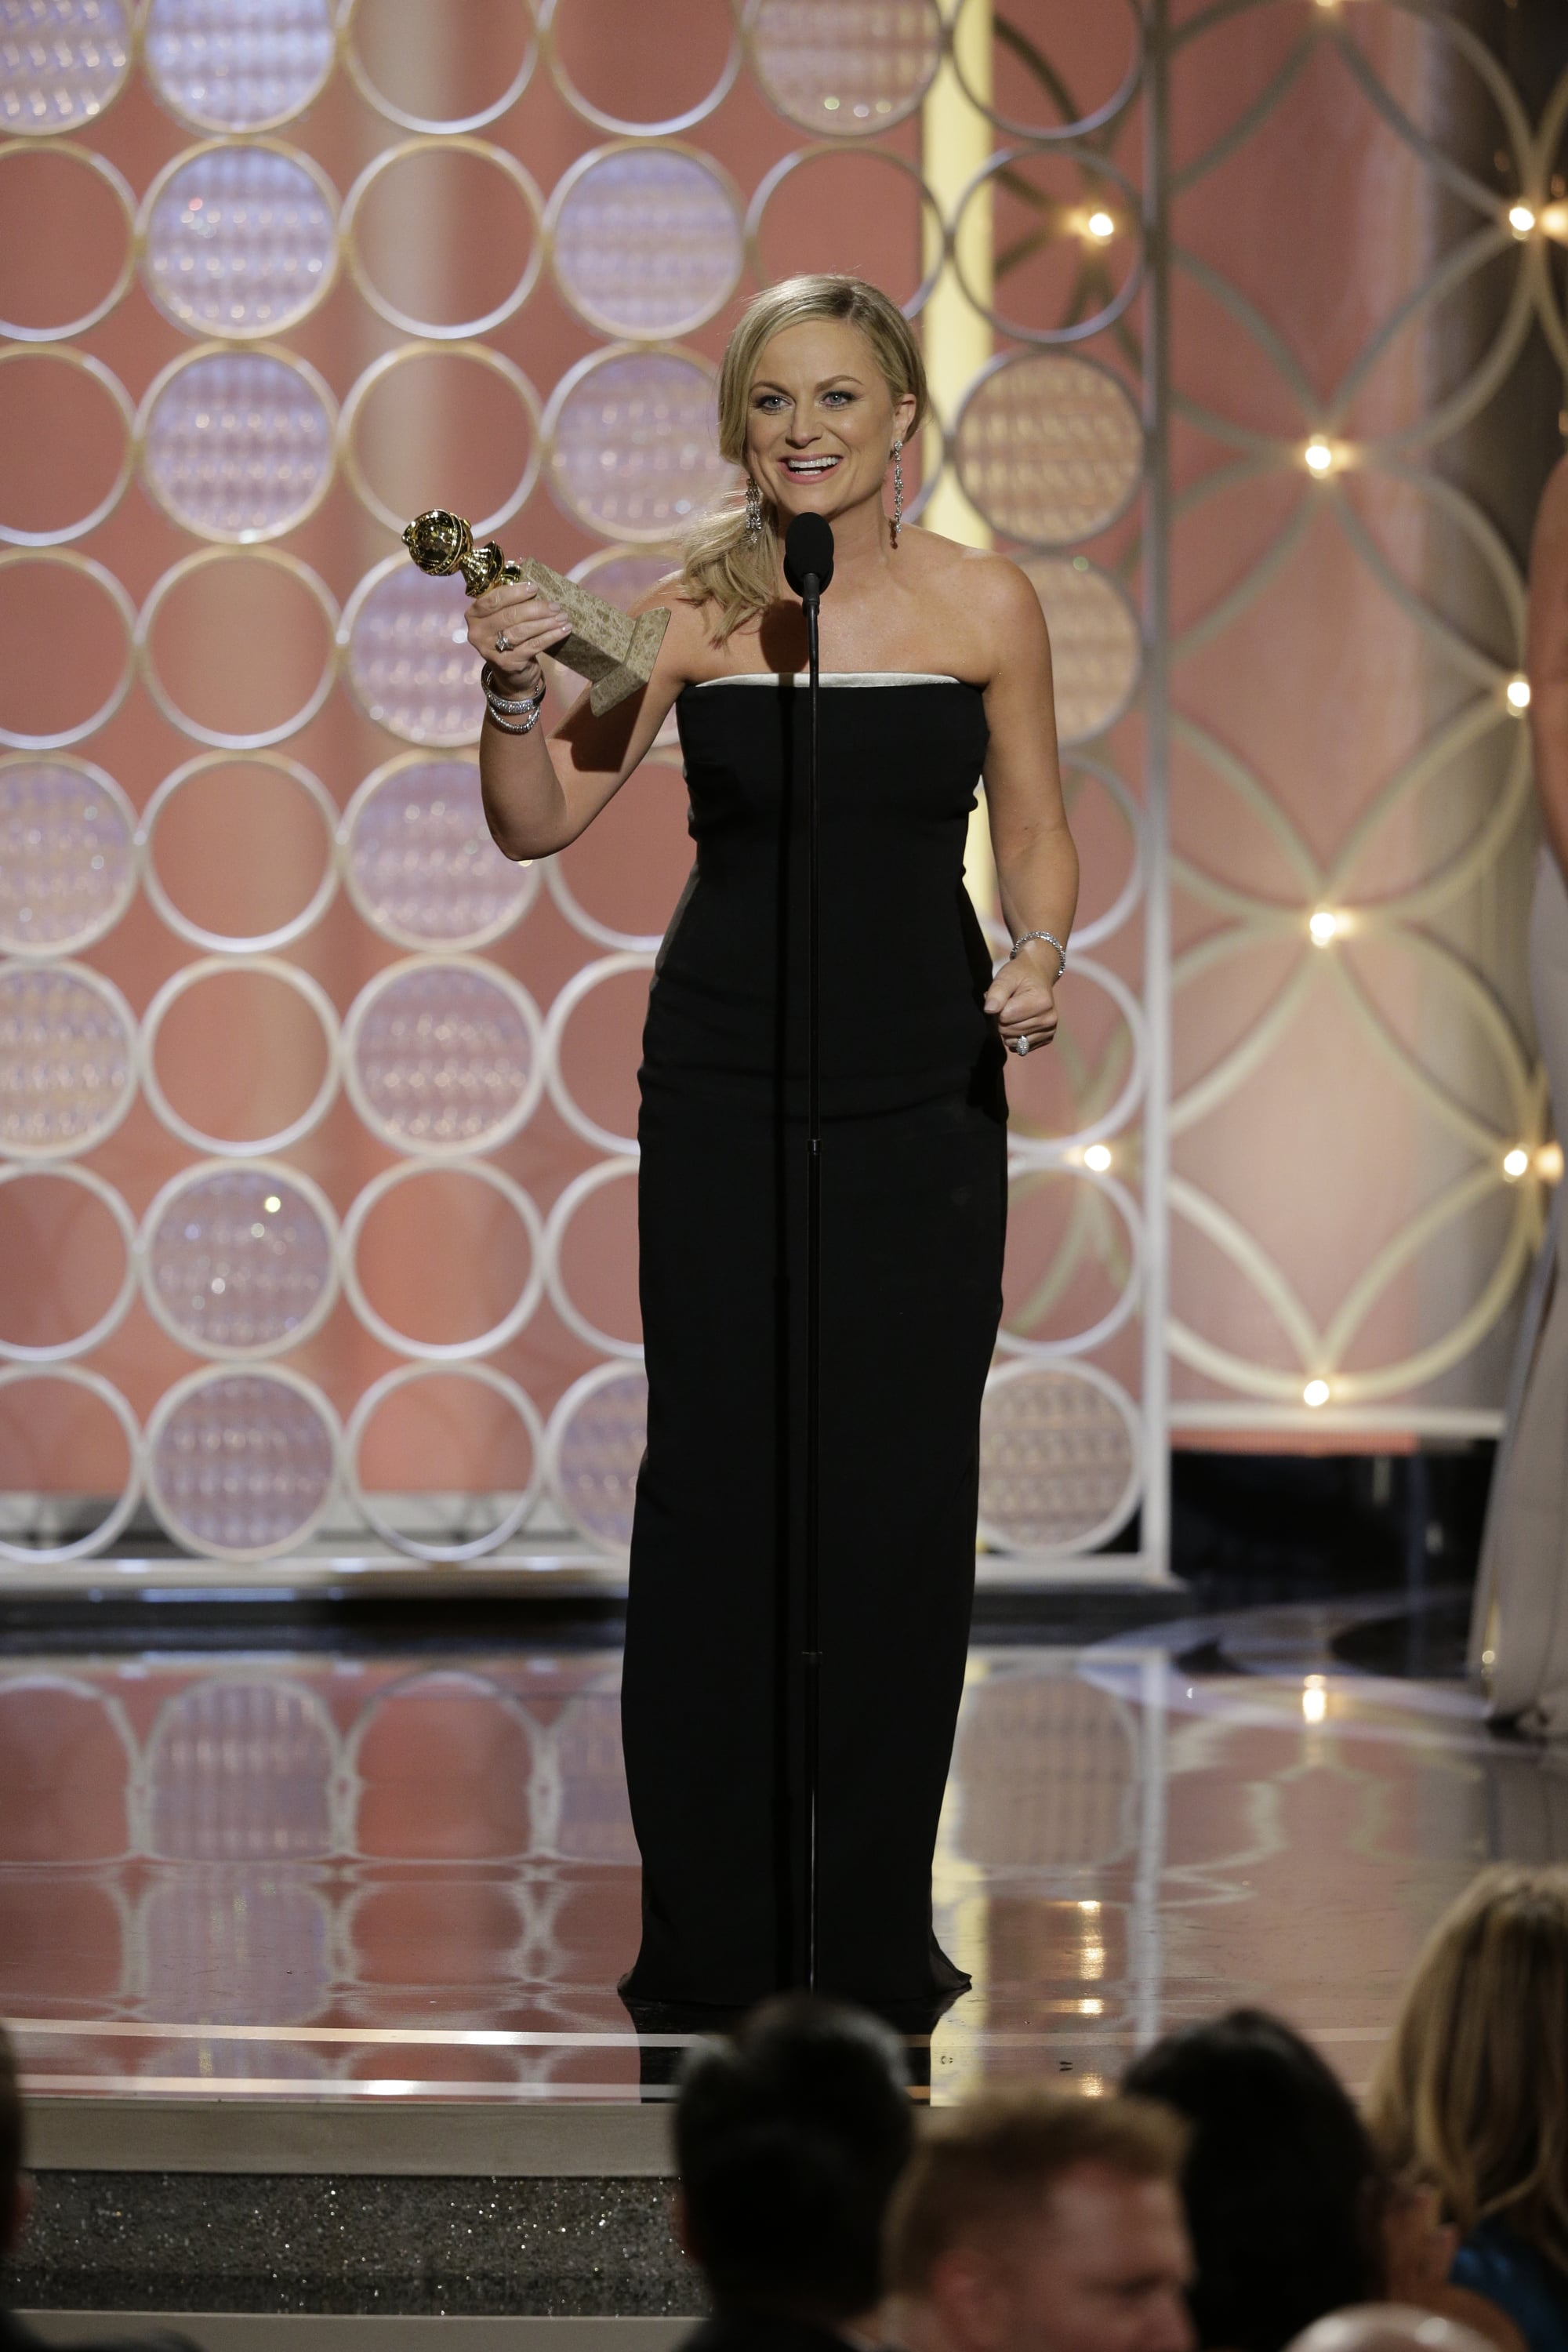 Amy Poehler Finally Wins For Parks and Recreation